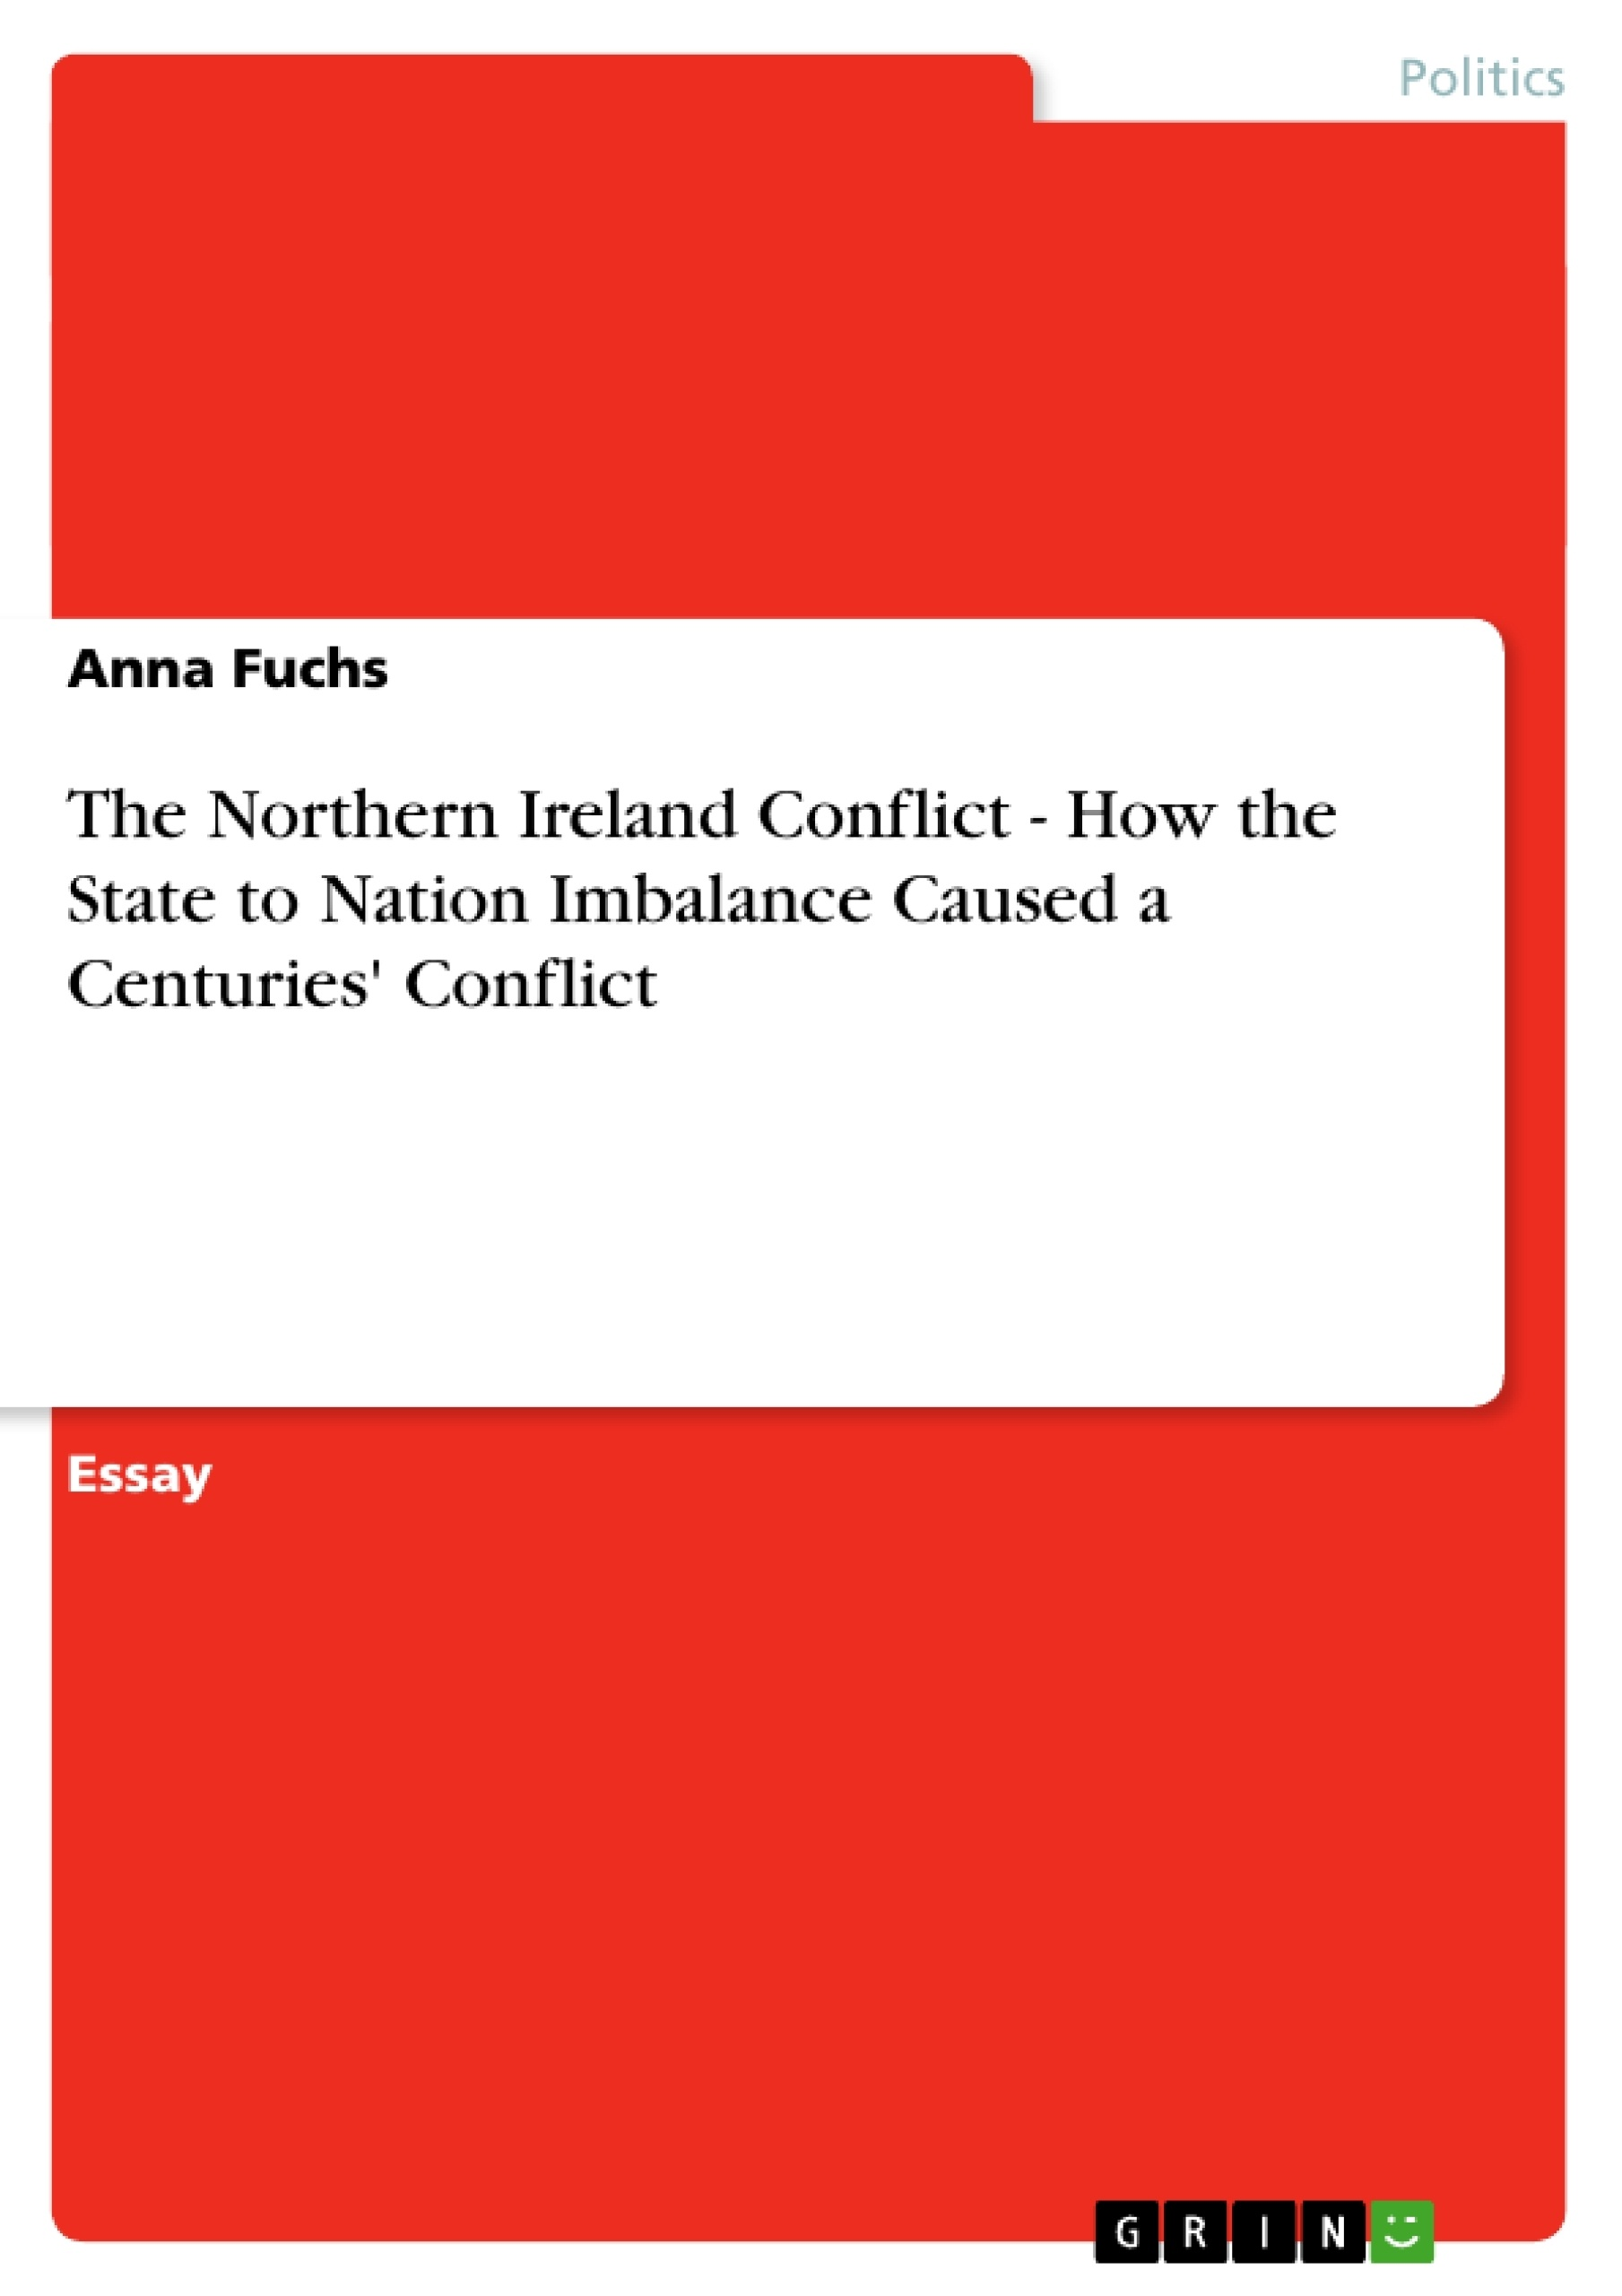 Title: The Northern Ireland Conflict - How the State to Nation Imbalance Caused a Centuries' Conflict